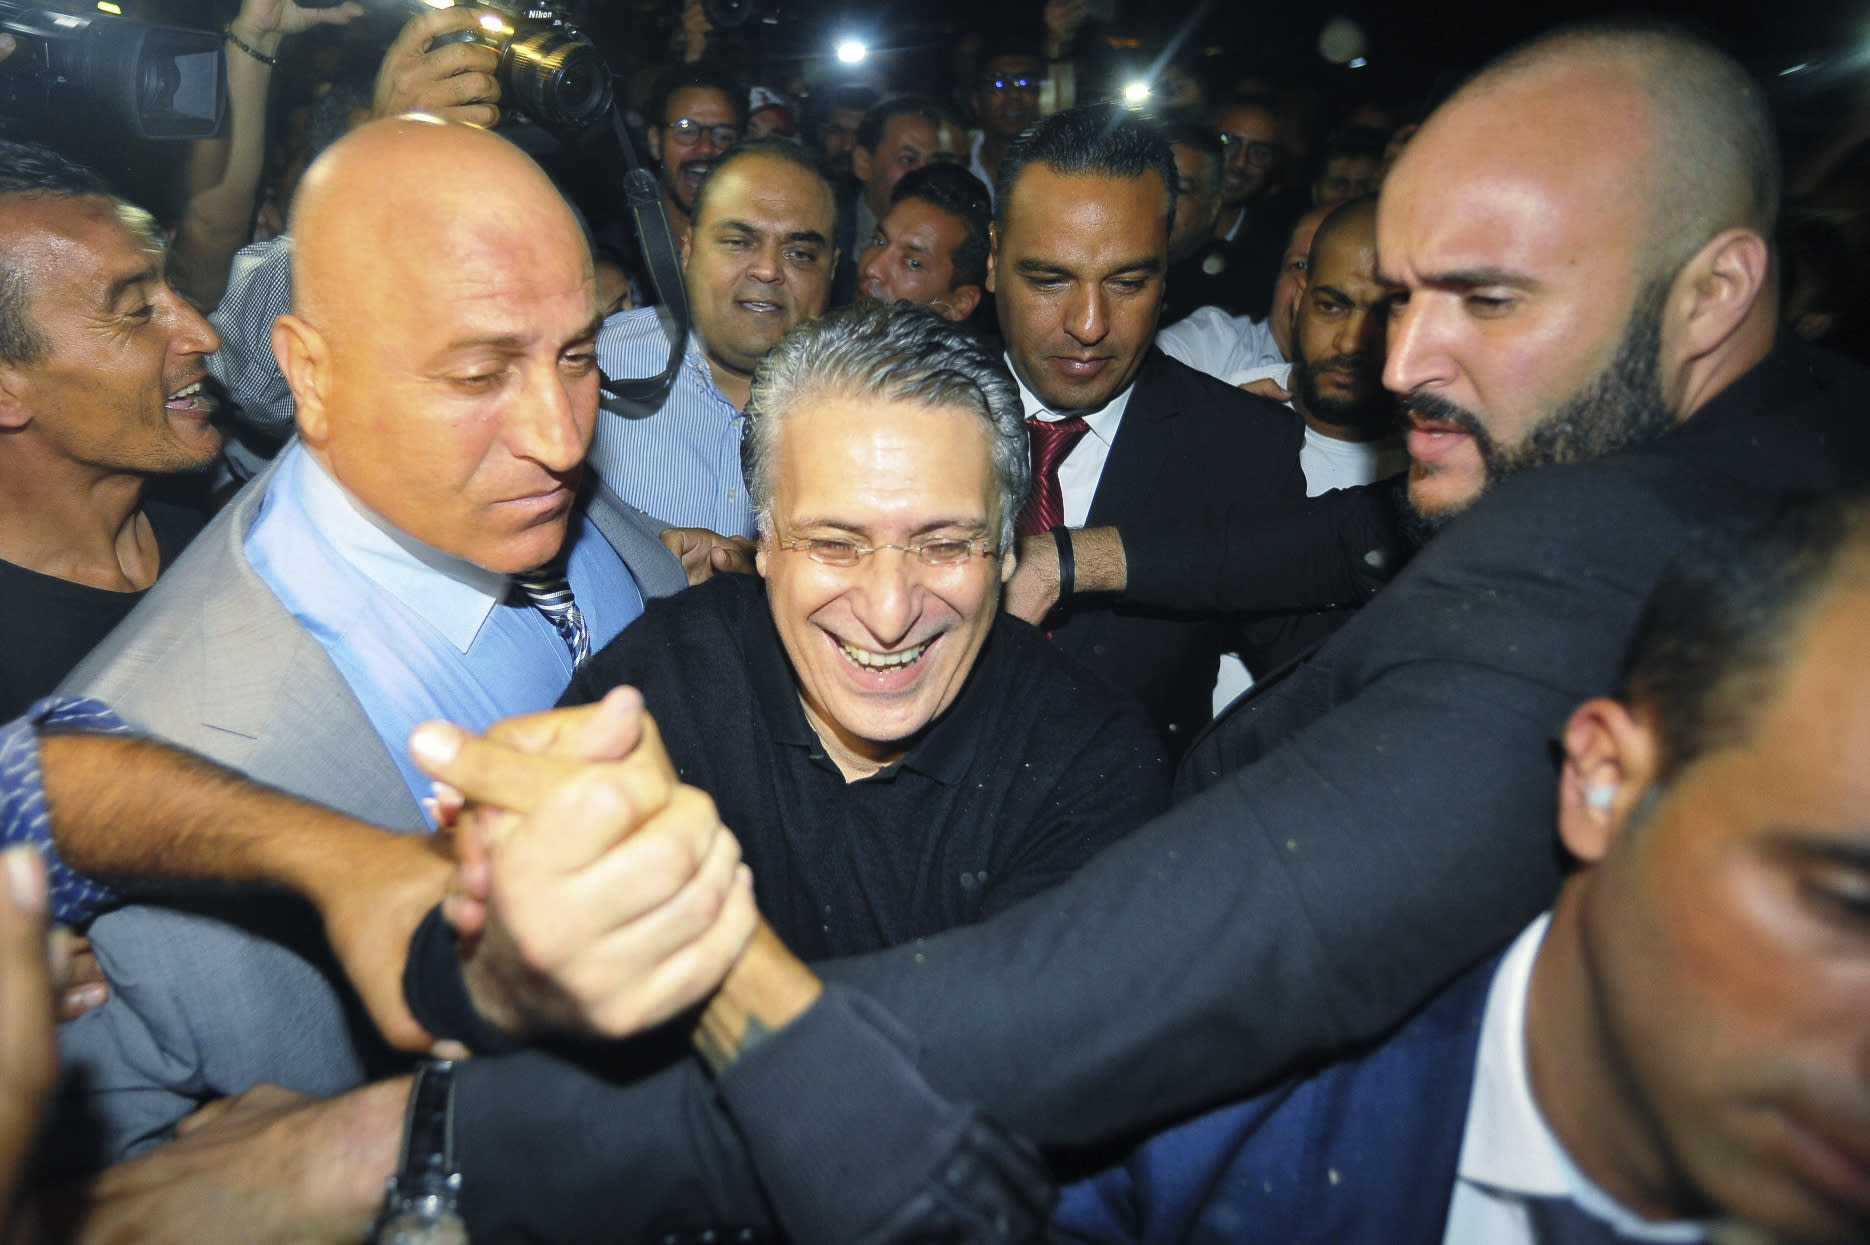 Tunisian presidential candidate and media mogul Nabil Karoui, center, is greeted by jubilant crowds after he was released from prison in Mannouba, Tunisia, Wednesday Oct. 9, 2019, just four days before the upcoming presidential runoff election. Karoui has been jailed since August under investigation for alleged money laundering and tax fraud that he asserts as a politically motivated smear campaign. (AP Photo)